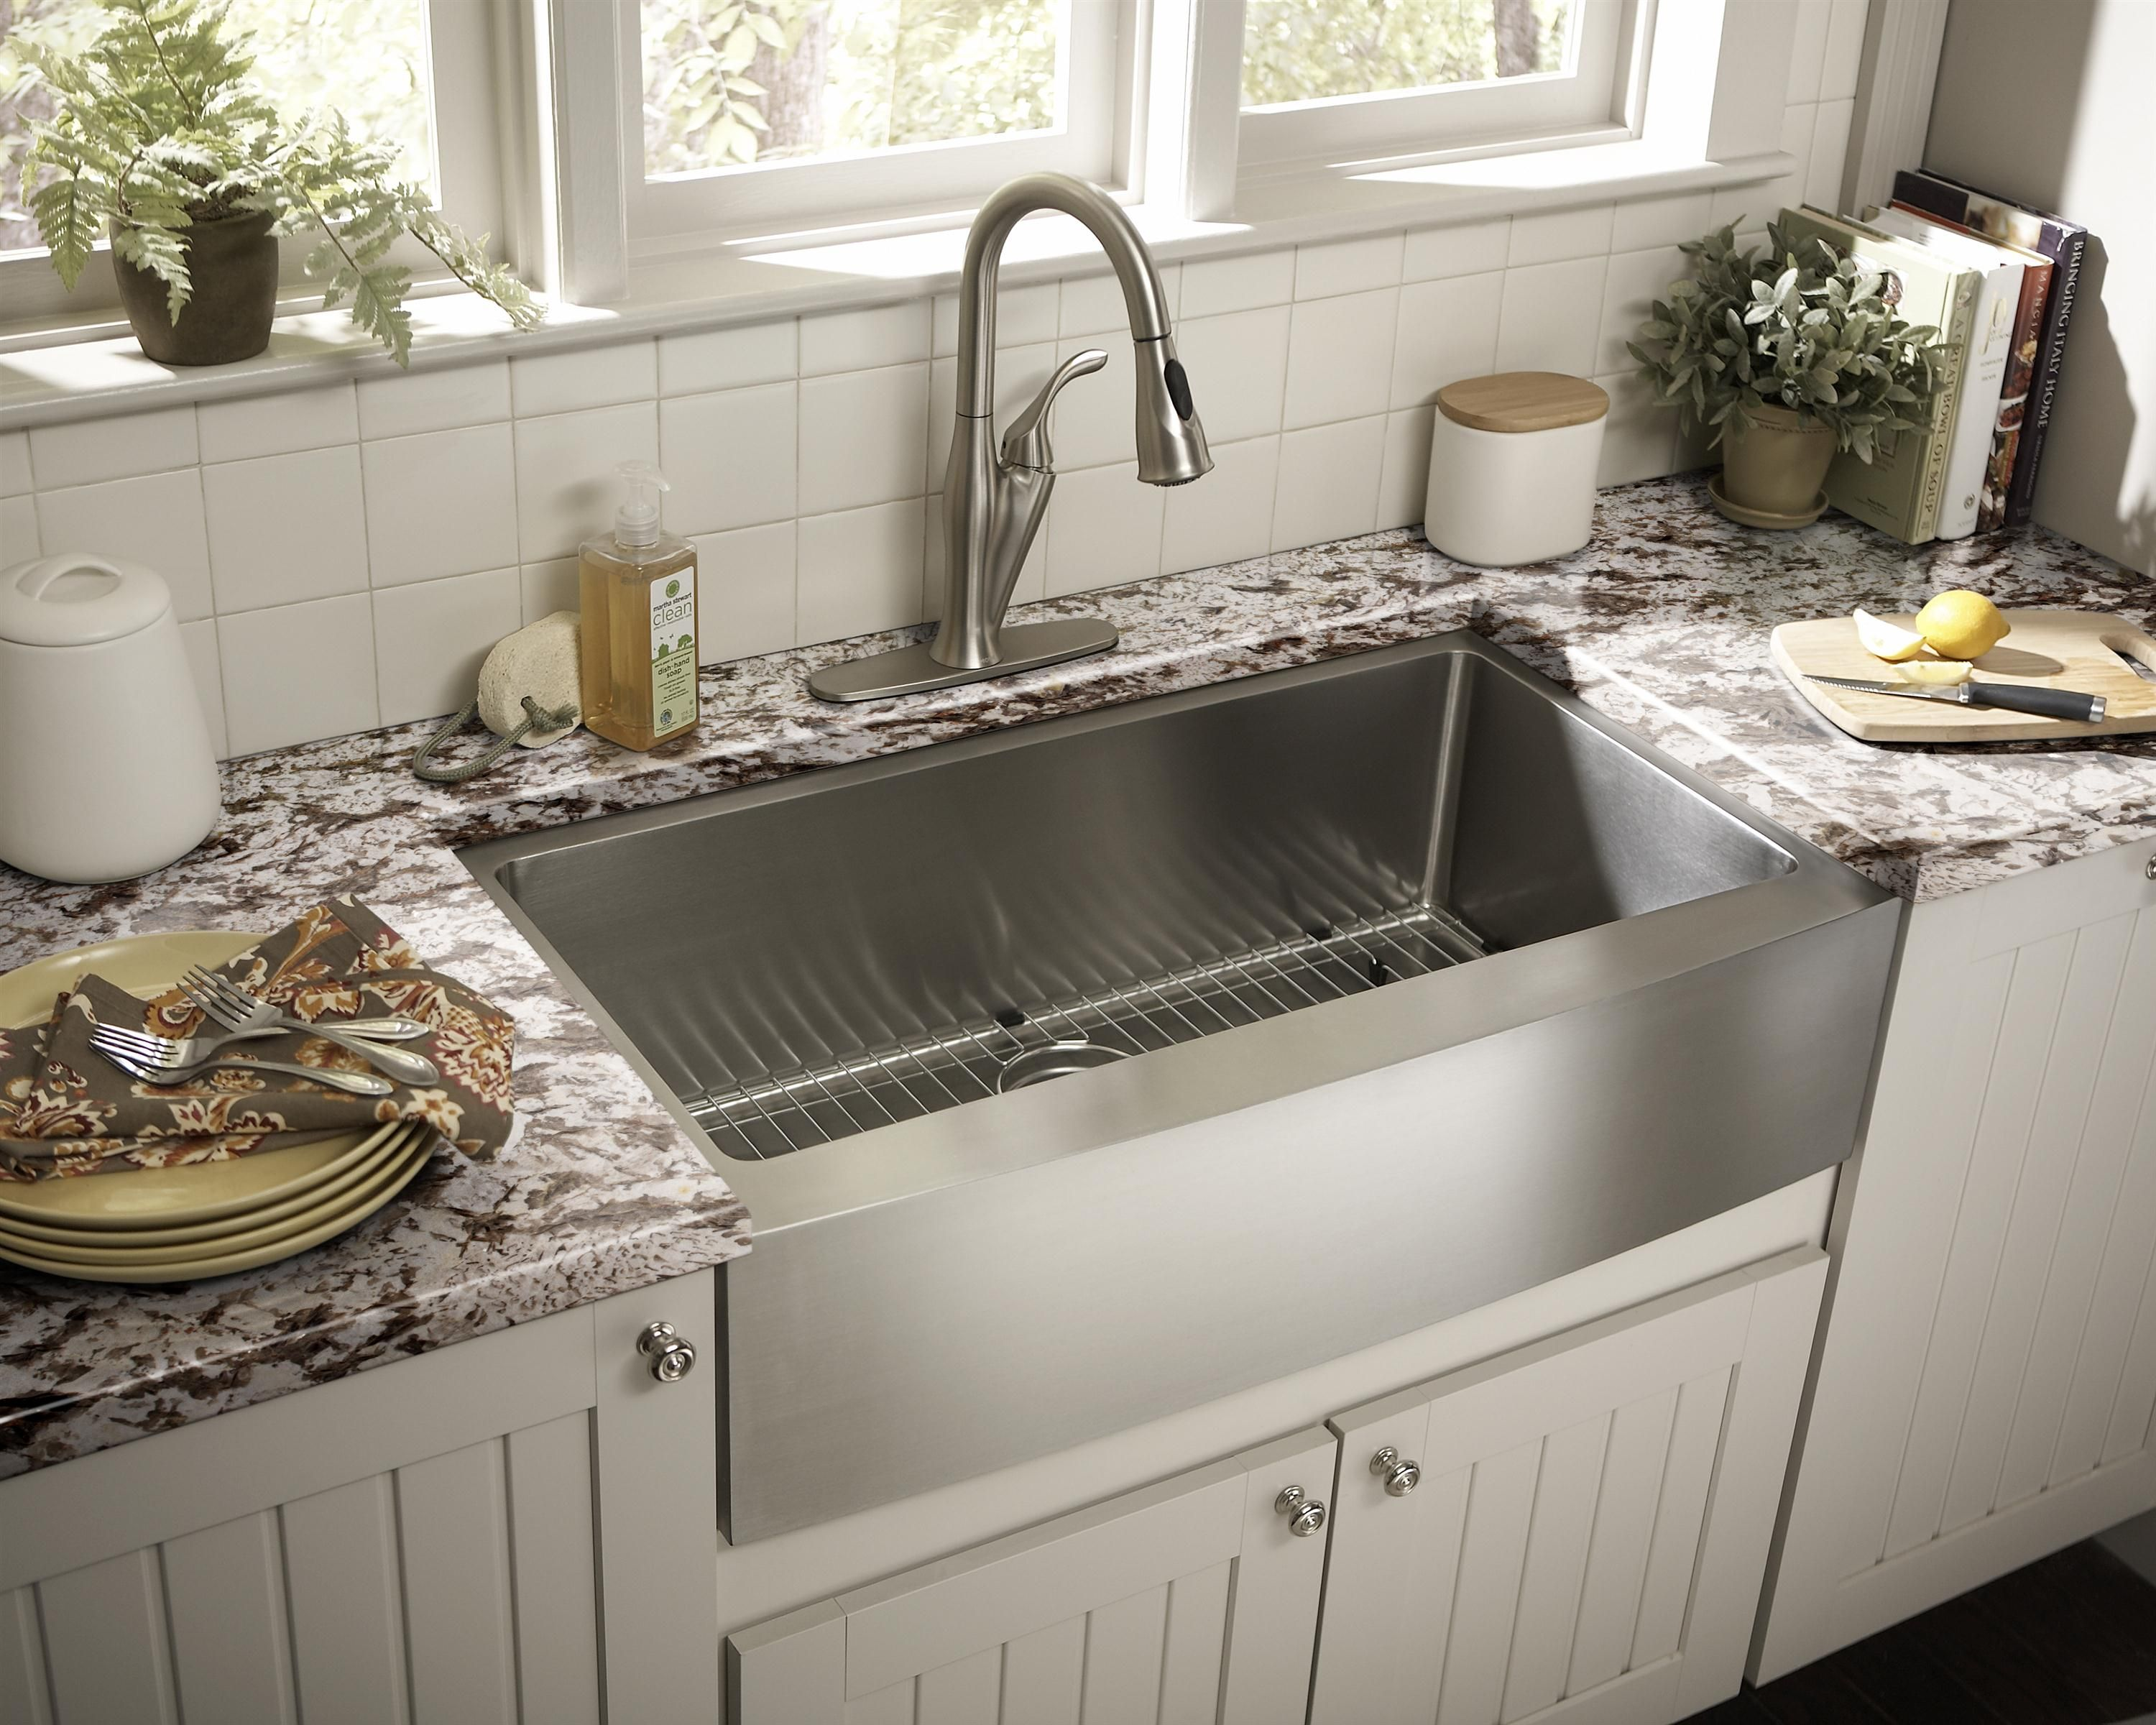 36 Nice White Sink Kitchen Design Ideas